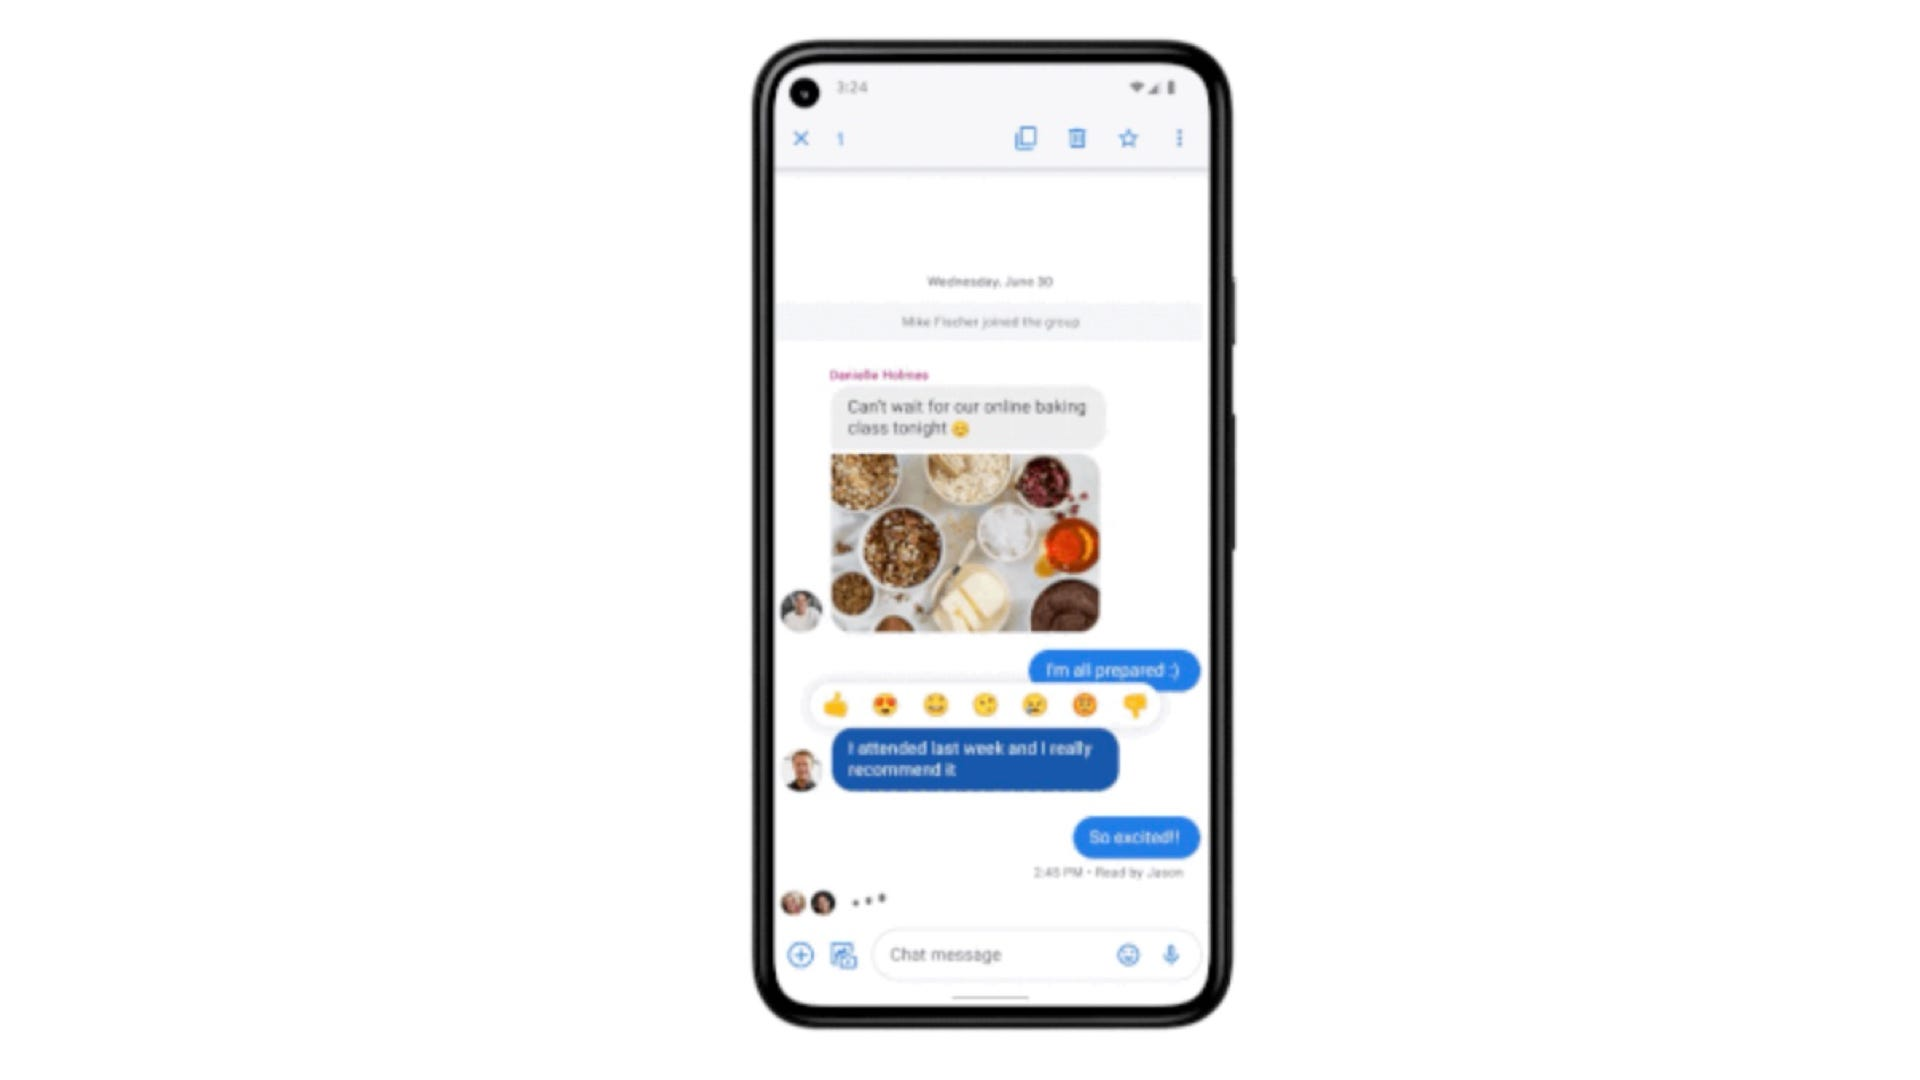 Google Messages features